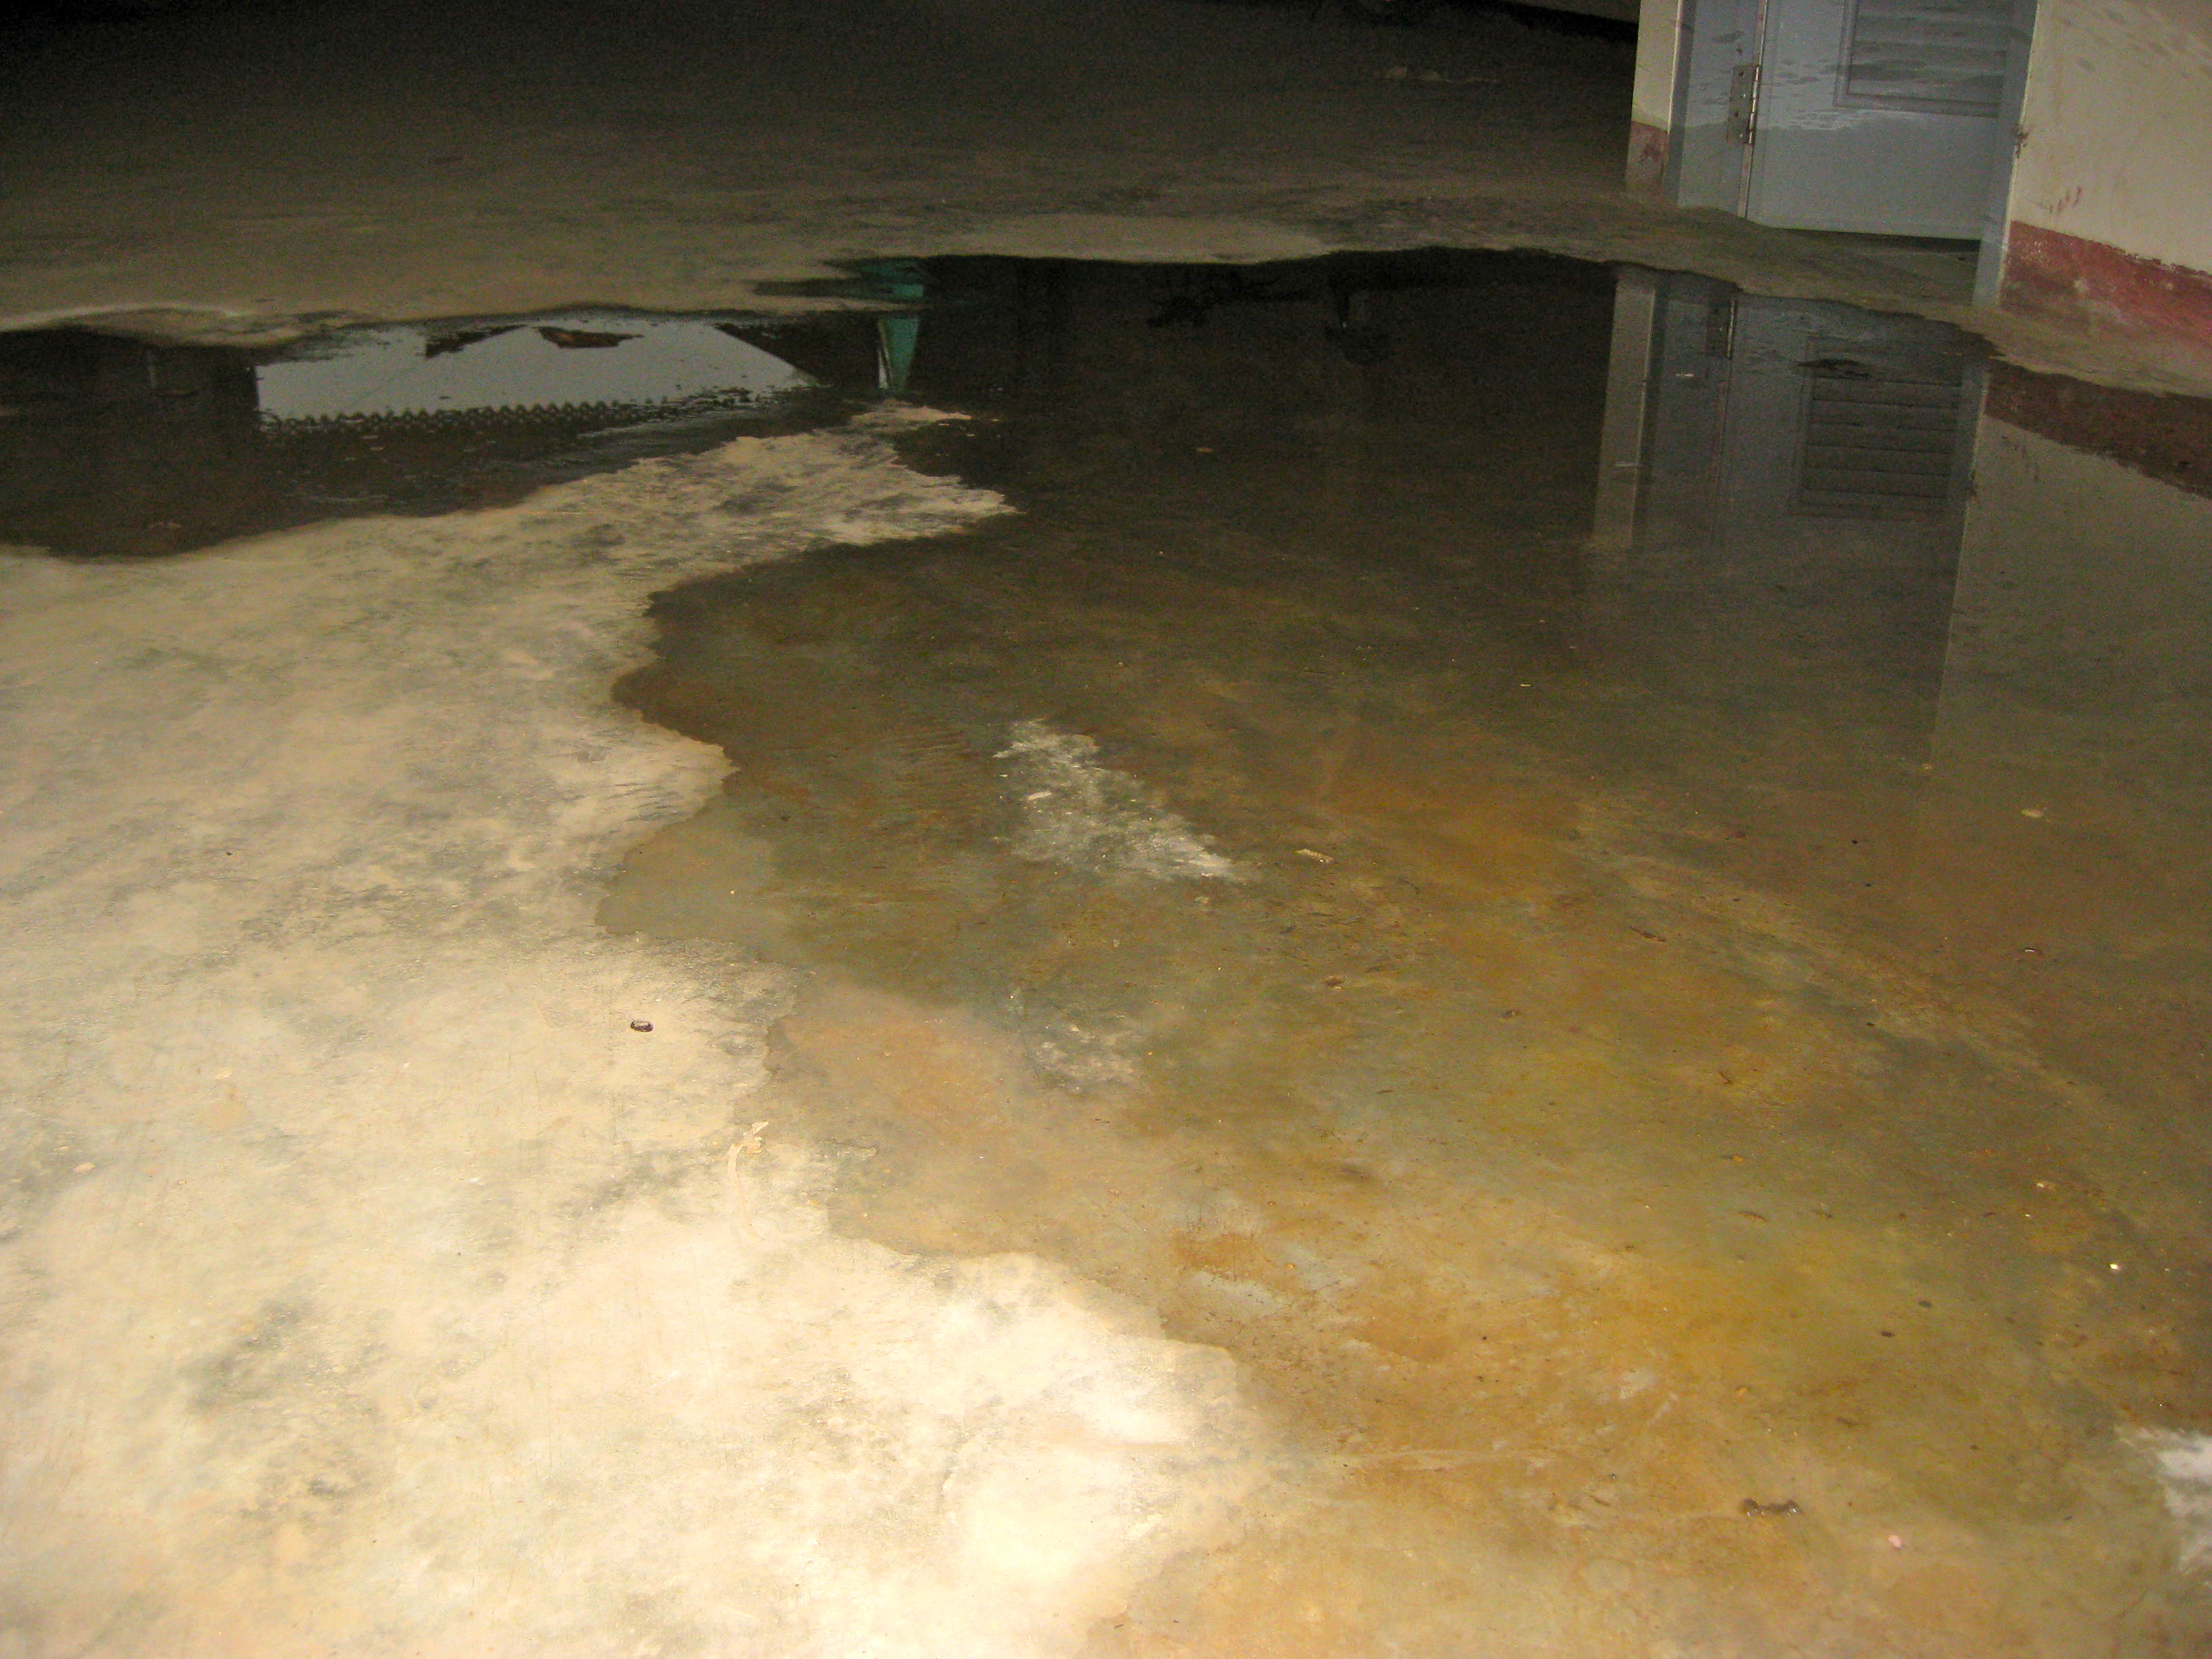 Wet Kitchen Floor Similiar Wet Bathroom Floor Drain Keywords